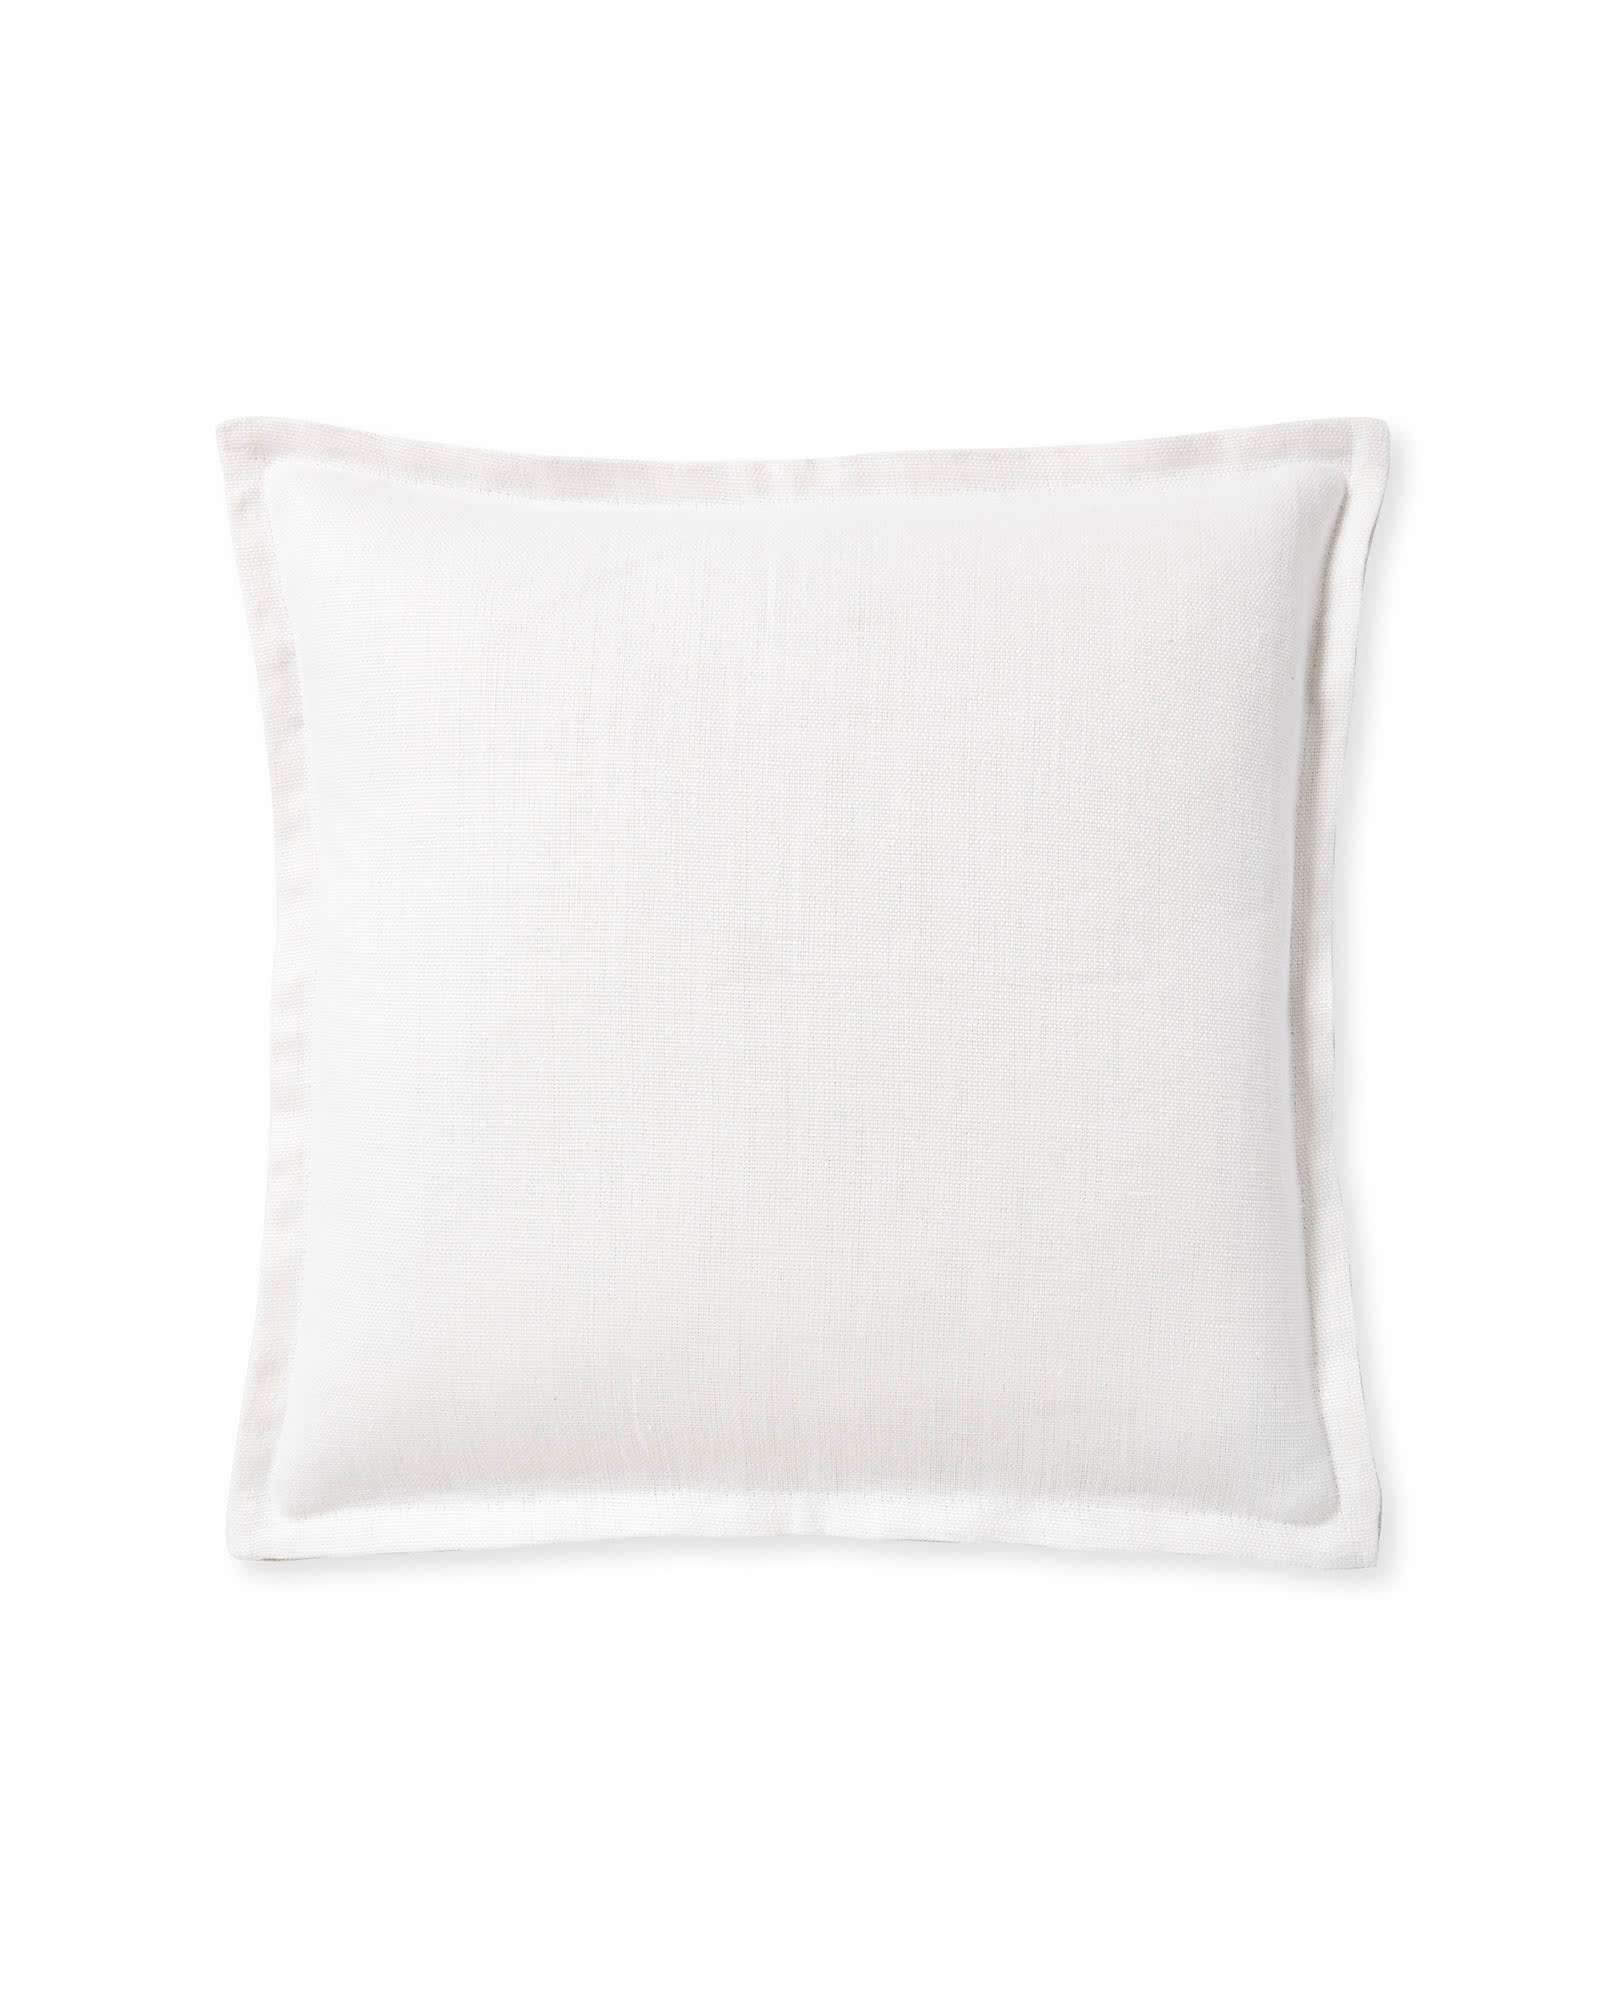 Two Tone Zip Pillow Cover, Bone/Platinum